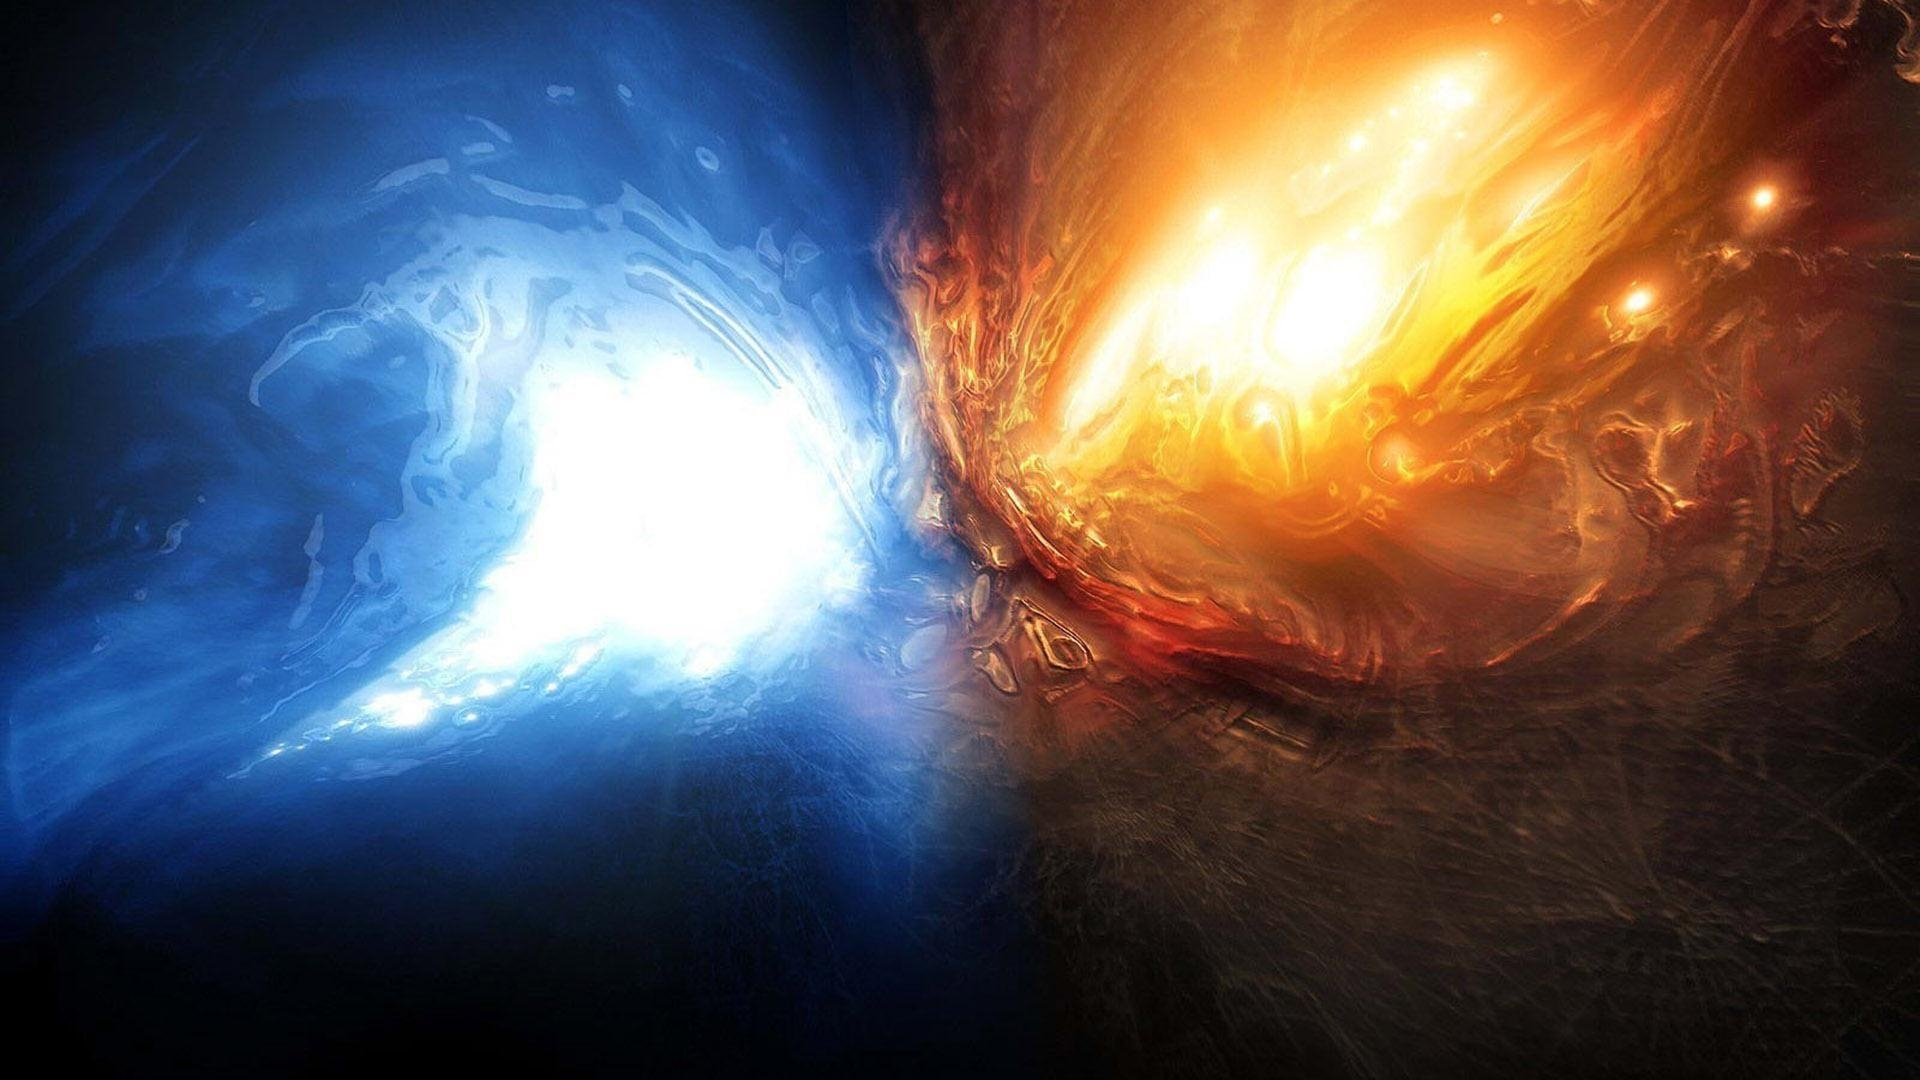 fire and water wallpapers - wallpaper cave